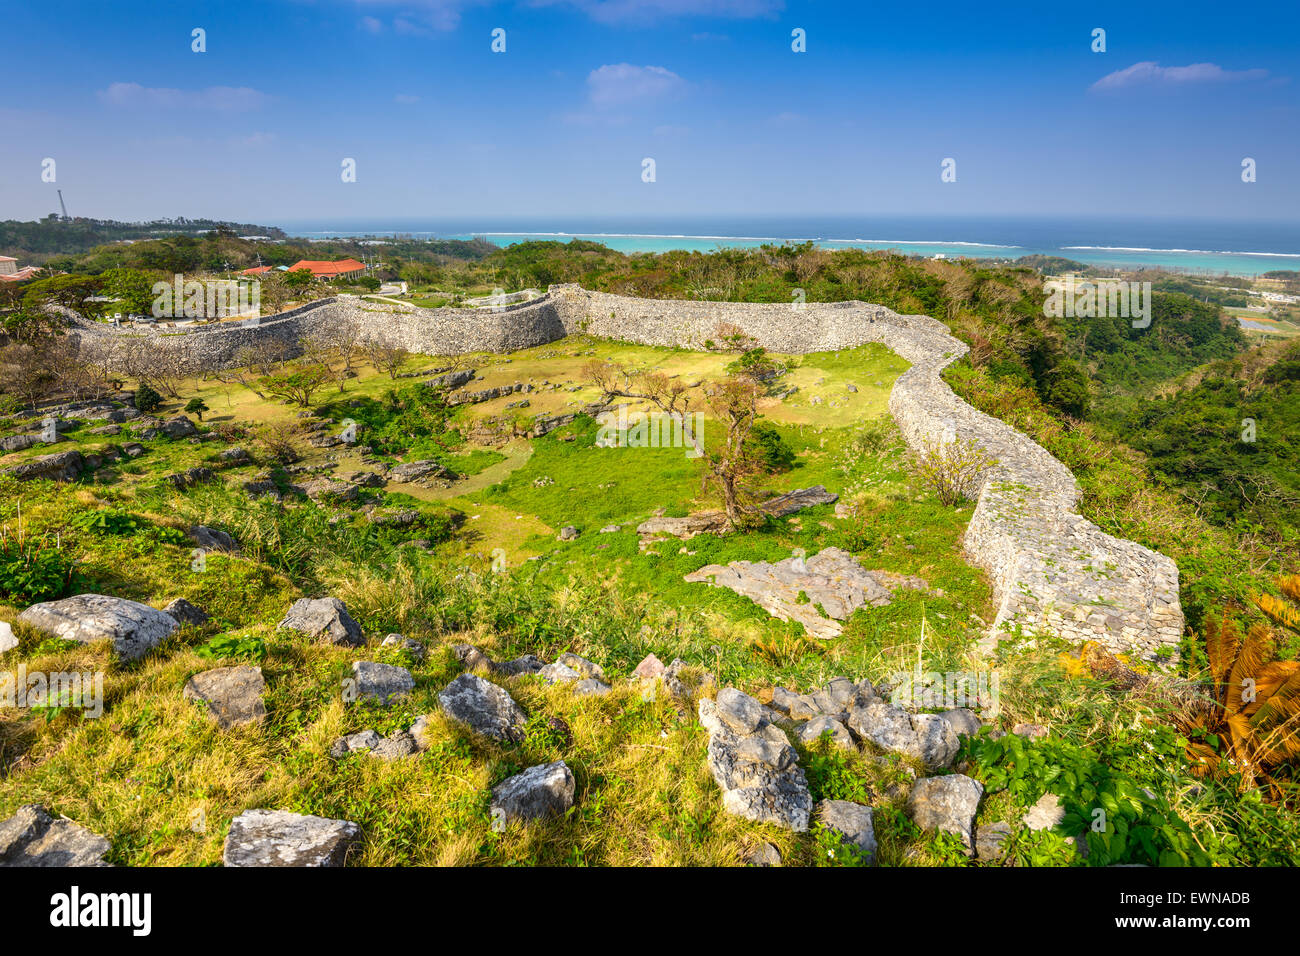 L'Okinawa, Japon à Nakagusuku Castle ruins. Photo Stock